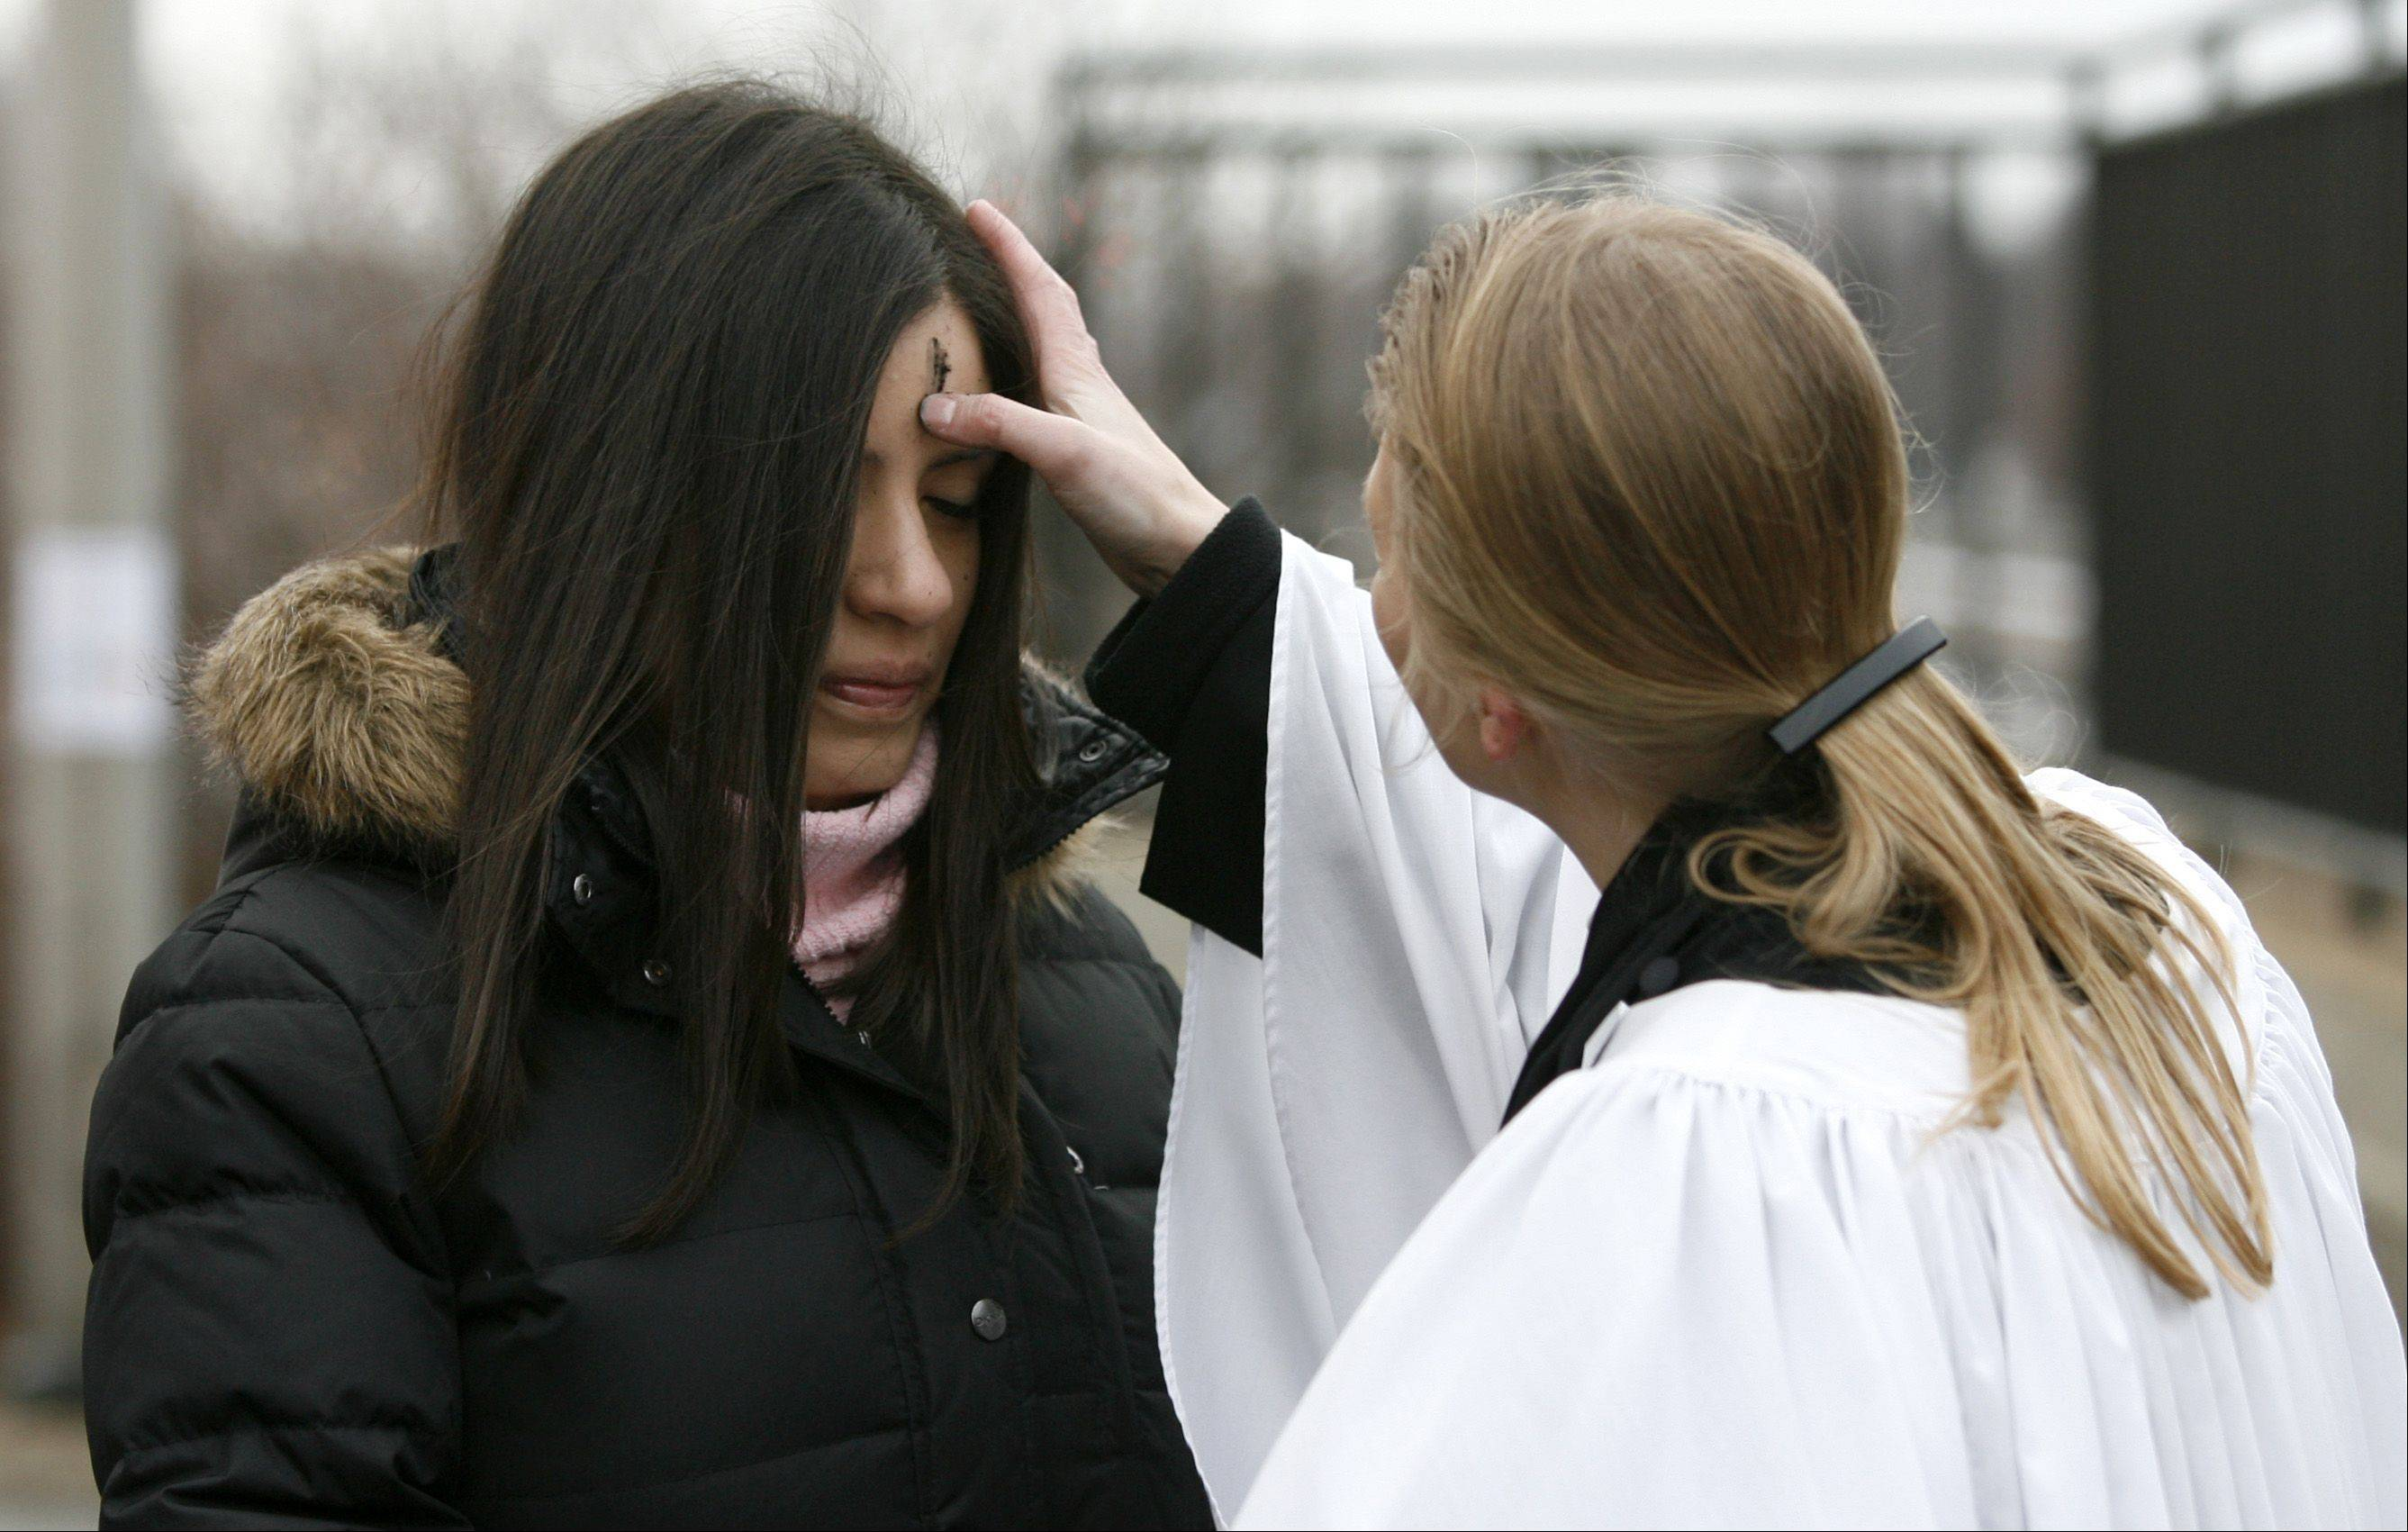 Maritza Summers receives ashes Wednesday morning from the Rev. Emily Mellott, pastor of Calvary Episcopal Church in Lombard, during the third annual offering of Ashes to Go at the Lombard train station.